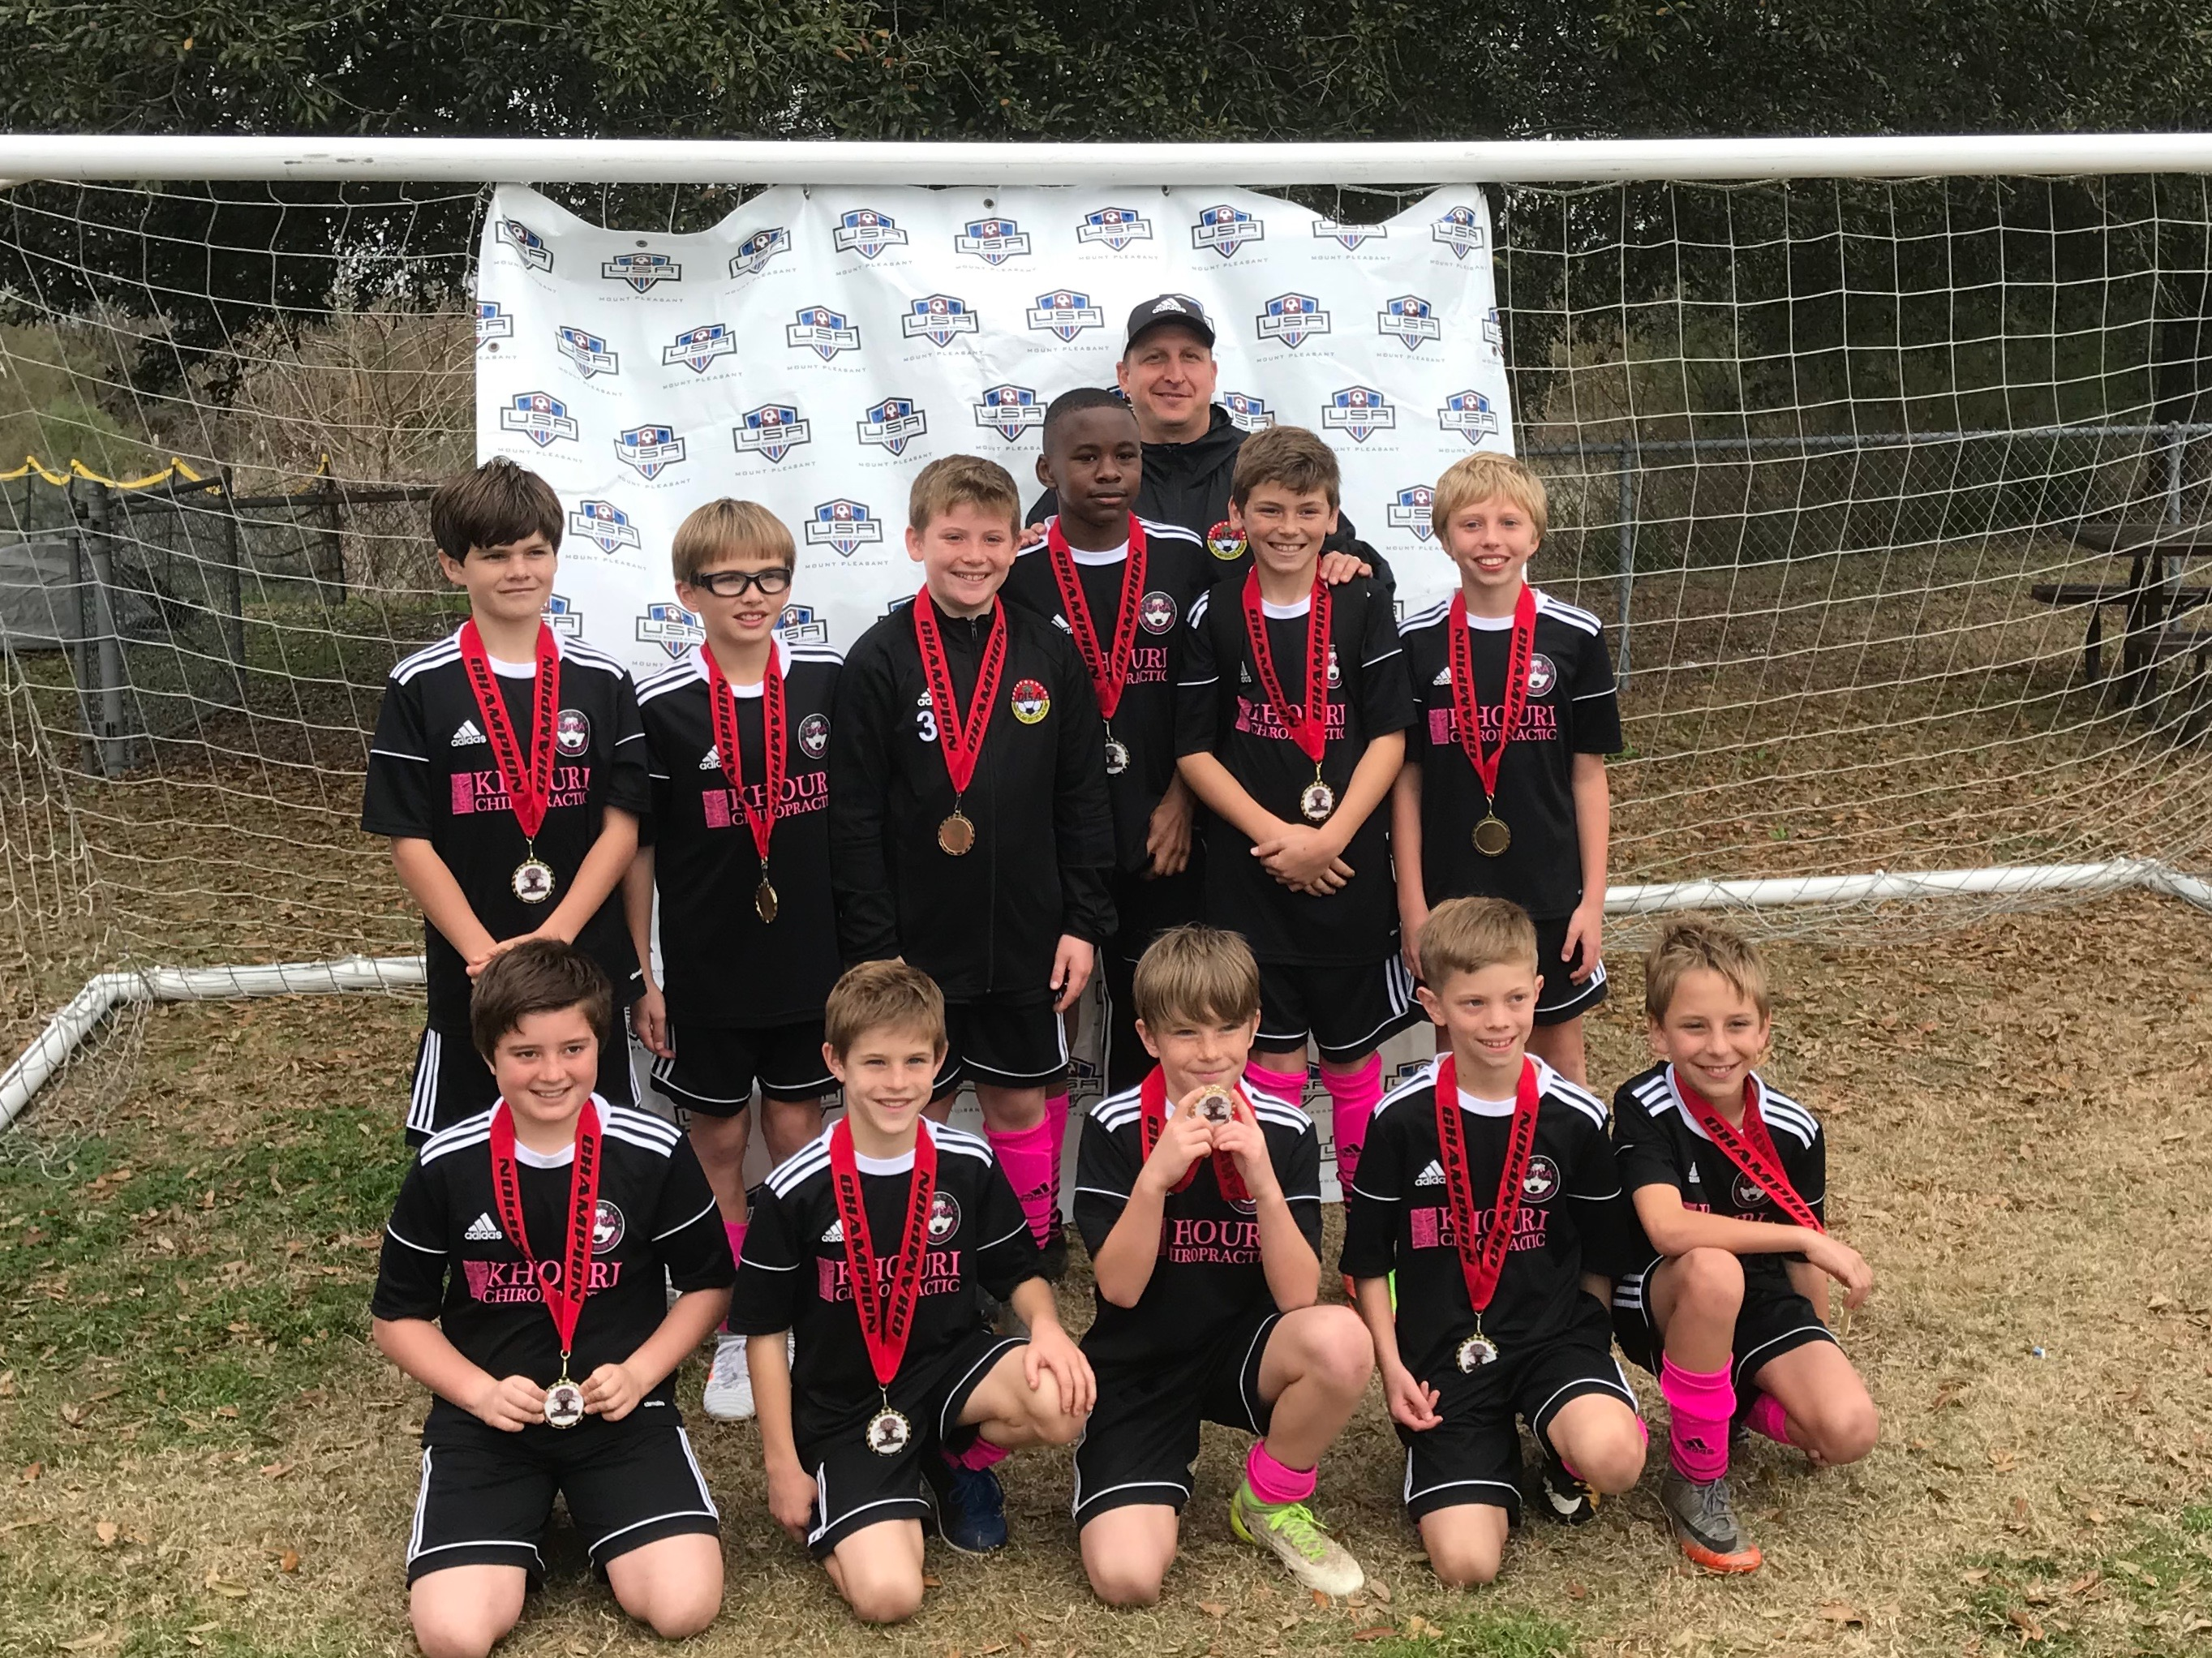 DISA's U11 Bayern! Top row (L to R): Harrison Grimm, Milling Galloway, Daniel Scarth, Sam Duncan, Banks Butler and Matthew Esse. Bottom (L to R): Matthew Ramsey, Will Varn, Reed Swanson (guest player from Dortmund), Max Toperzer and Nicholas Kirk. Not pictured are Caleb Becvinovski and Jackson Mueller (guest player from Dortmund).